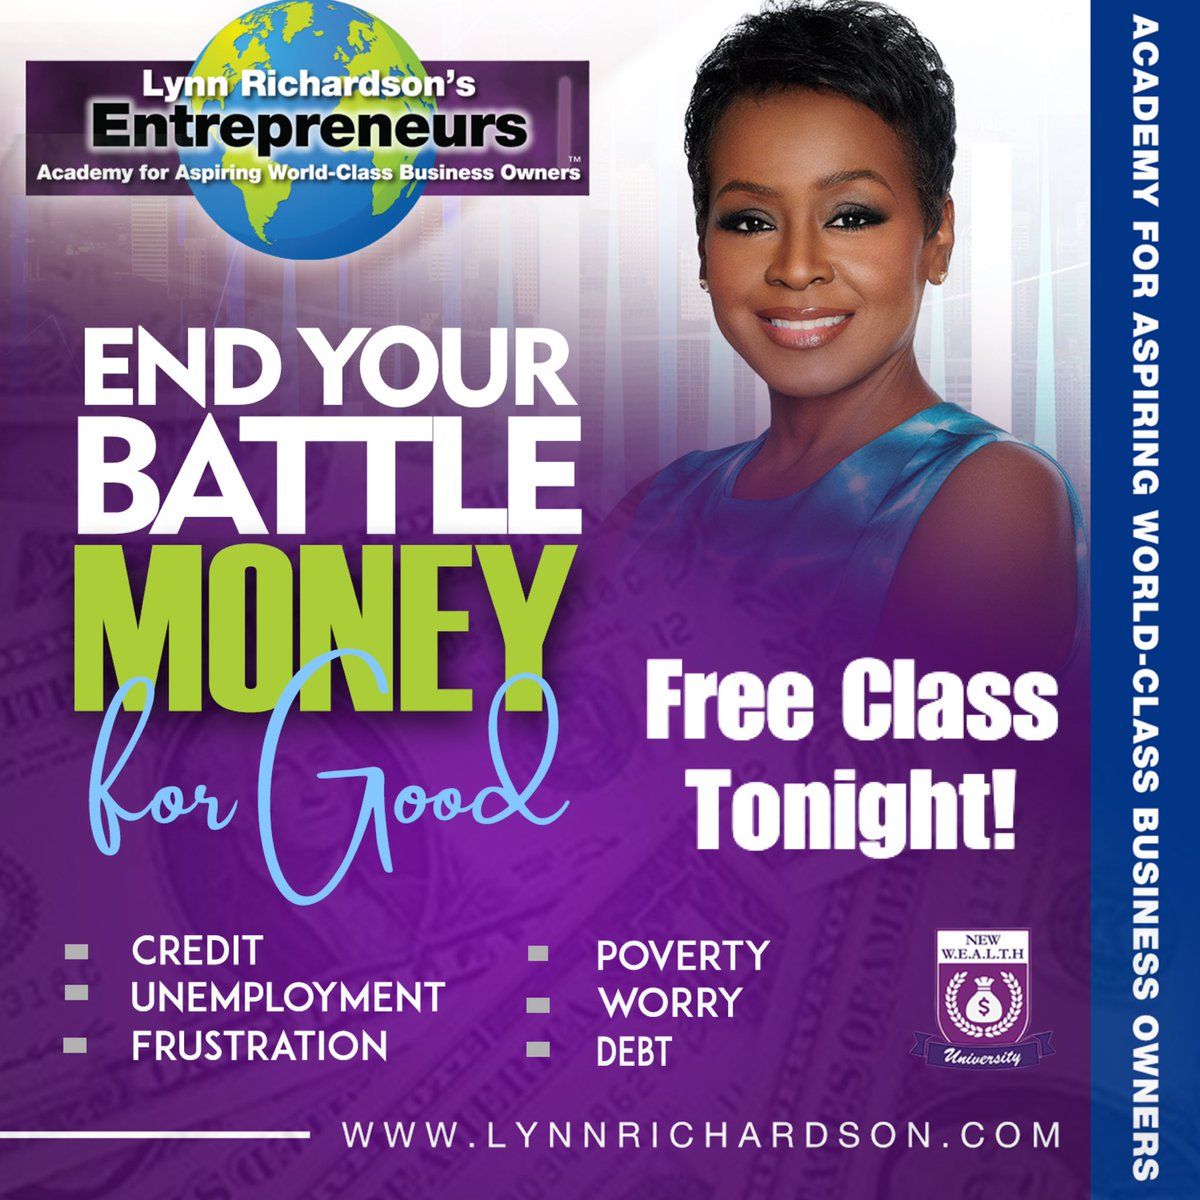 End Your Battle with Money for Good - free class tonight! Sept 3 7pm est - REGISTER https://t.co/bOXkyHlsV2 submit your inquiry then wait for an immediate reply https://t.co/vRGmYndsqJ